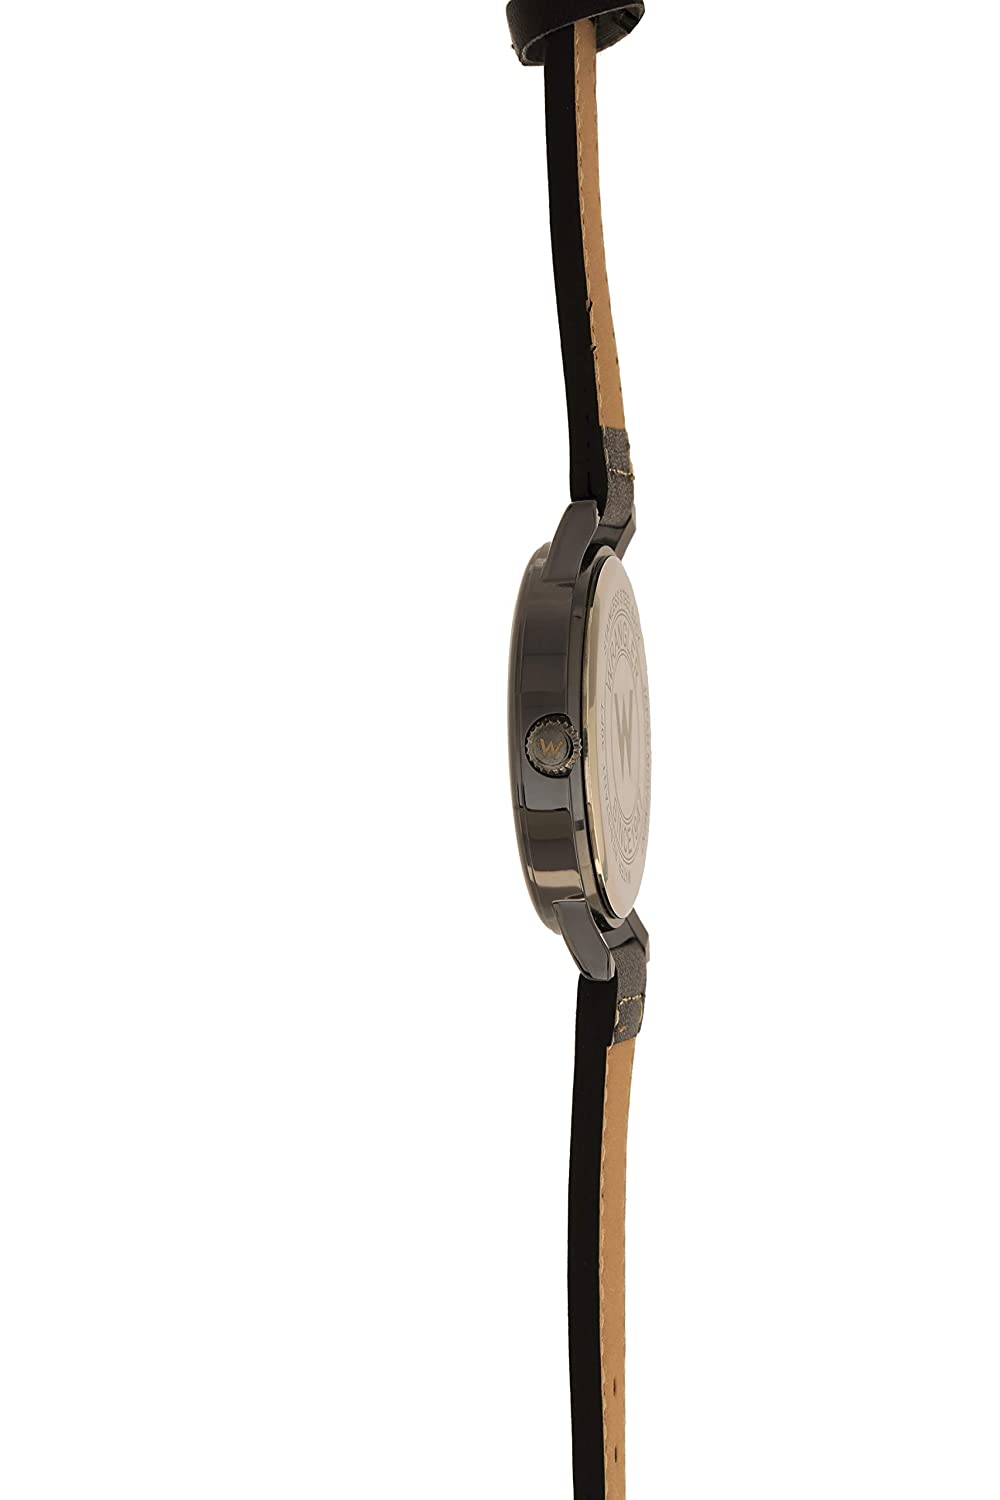 Wrangler Unisex Watch, 42mm with Natural Band White Stitching, Oversized Crown, Water Resistant